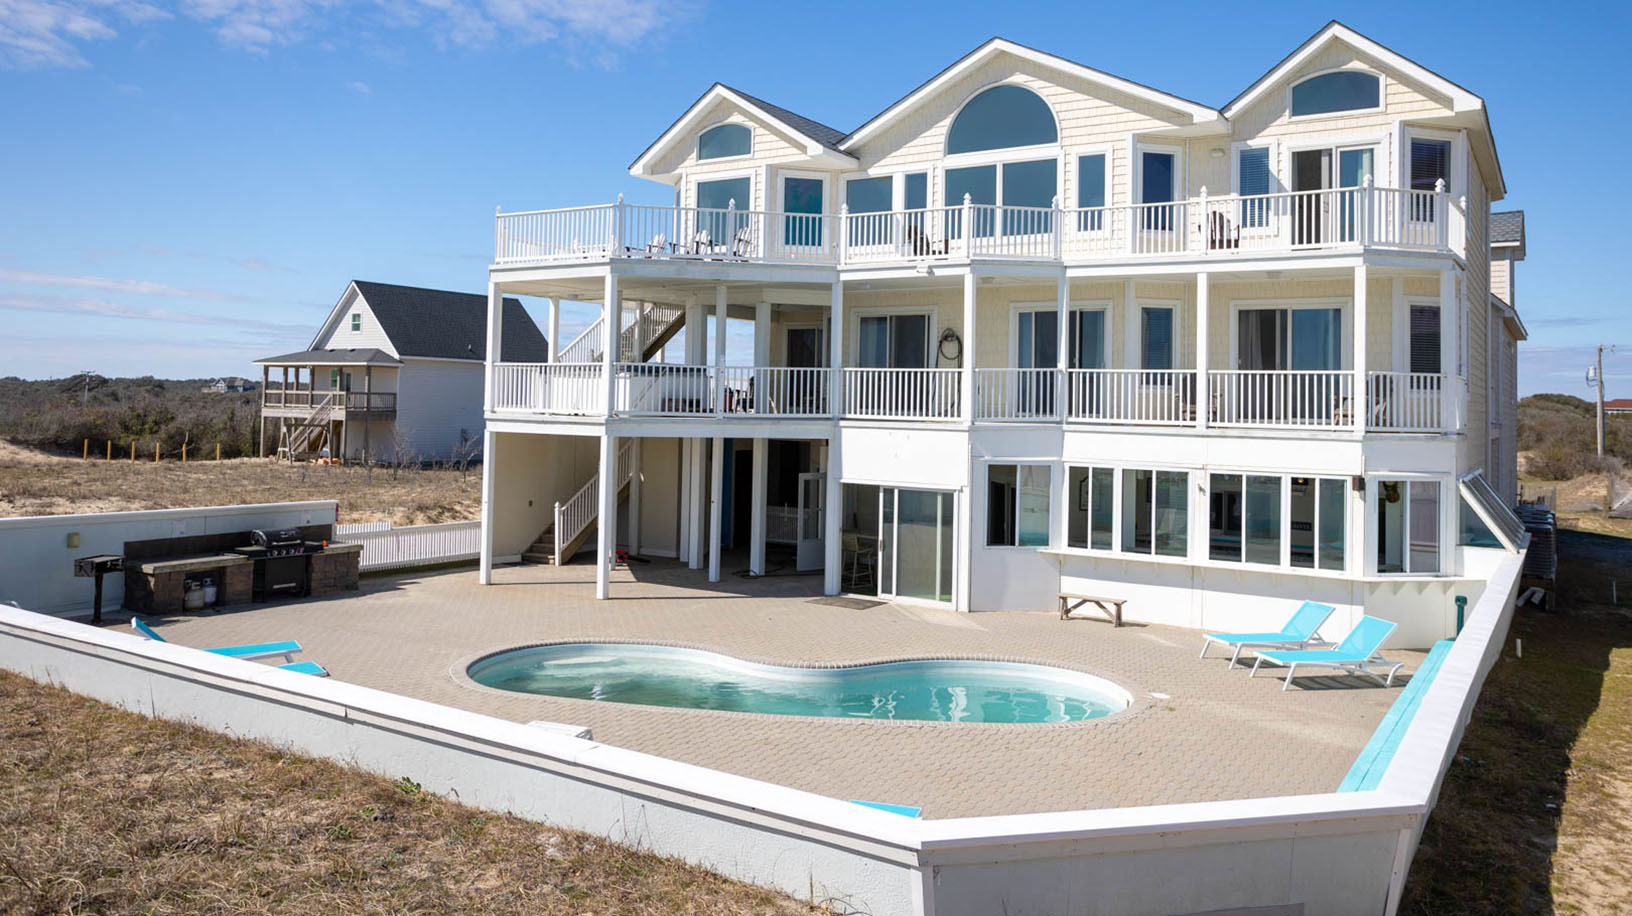 Mermaid S Reef Vacation Rental Twiddy Amp Company